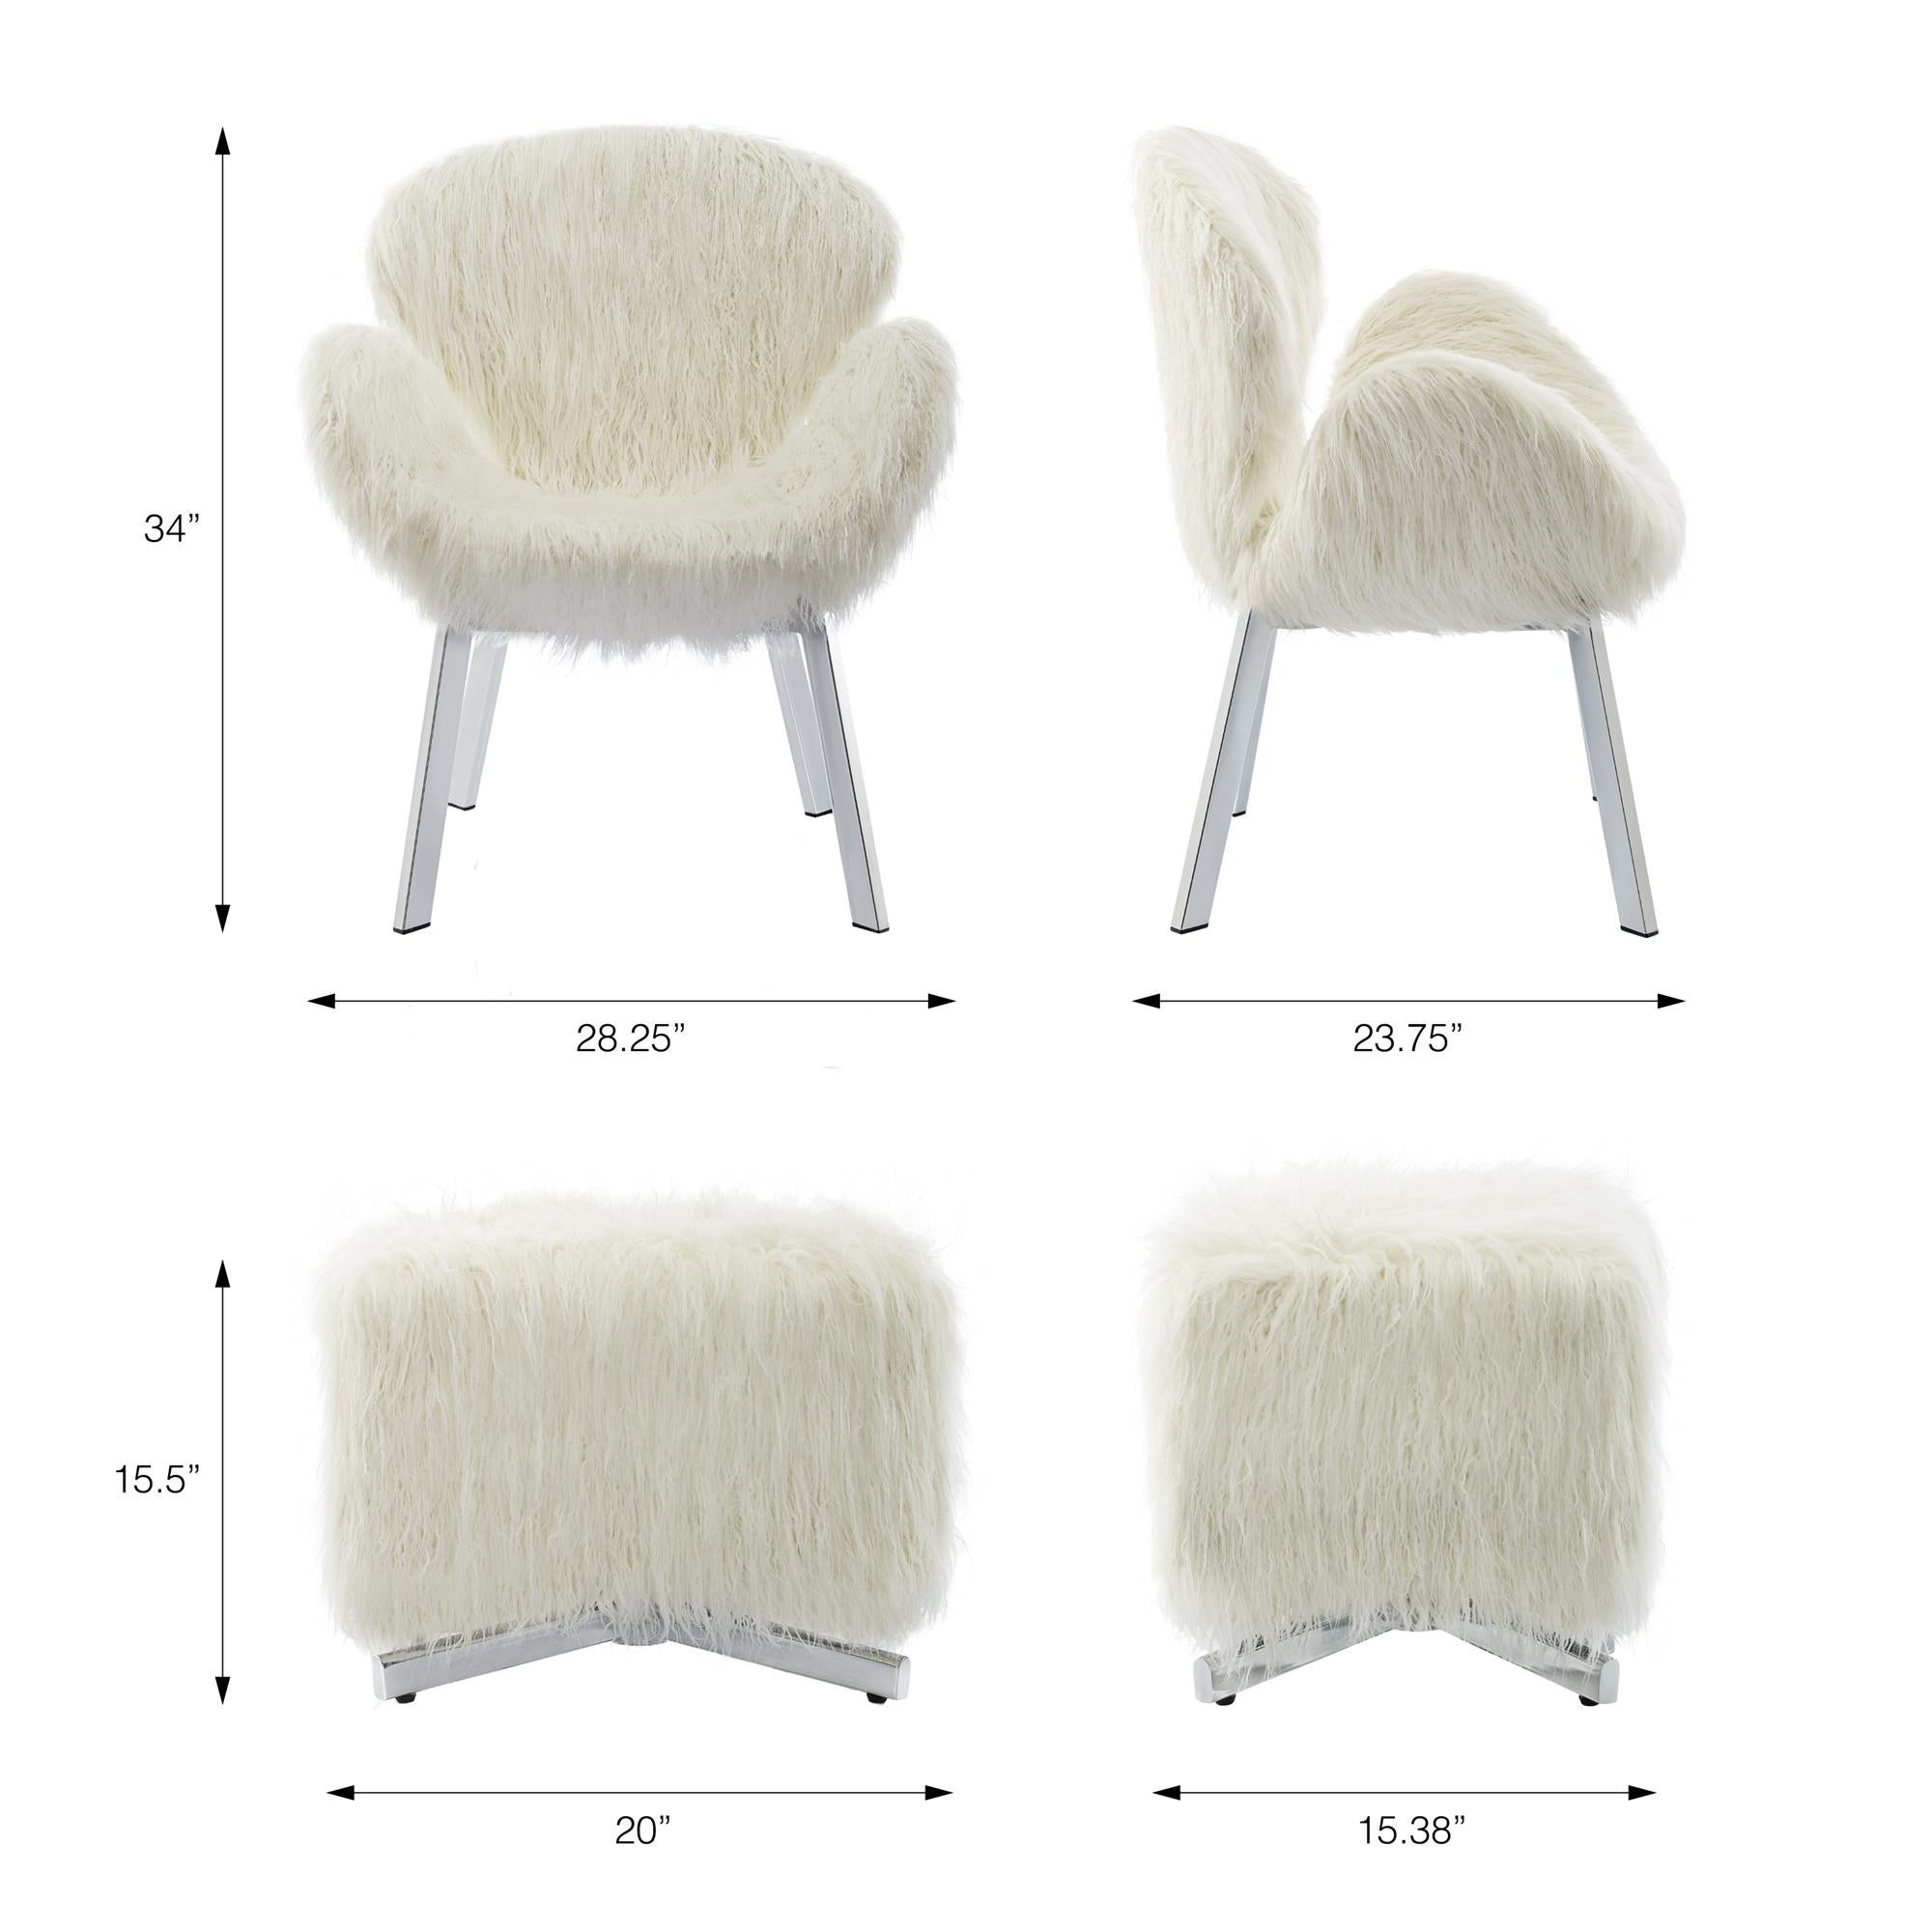 Outstanding Cosmoliving Estelle Accent Chair And Ottoman With Faux Fur And Chrome Legs Alphanode Cool Chair Designs And Ideas Alphanodeonline